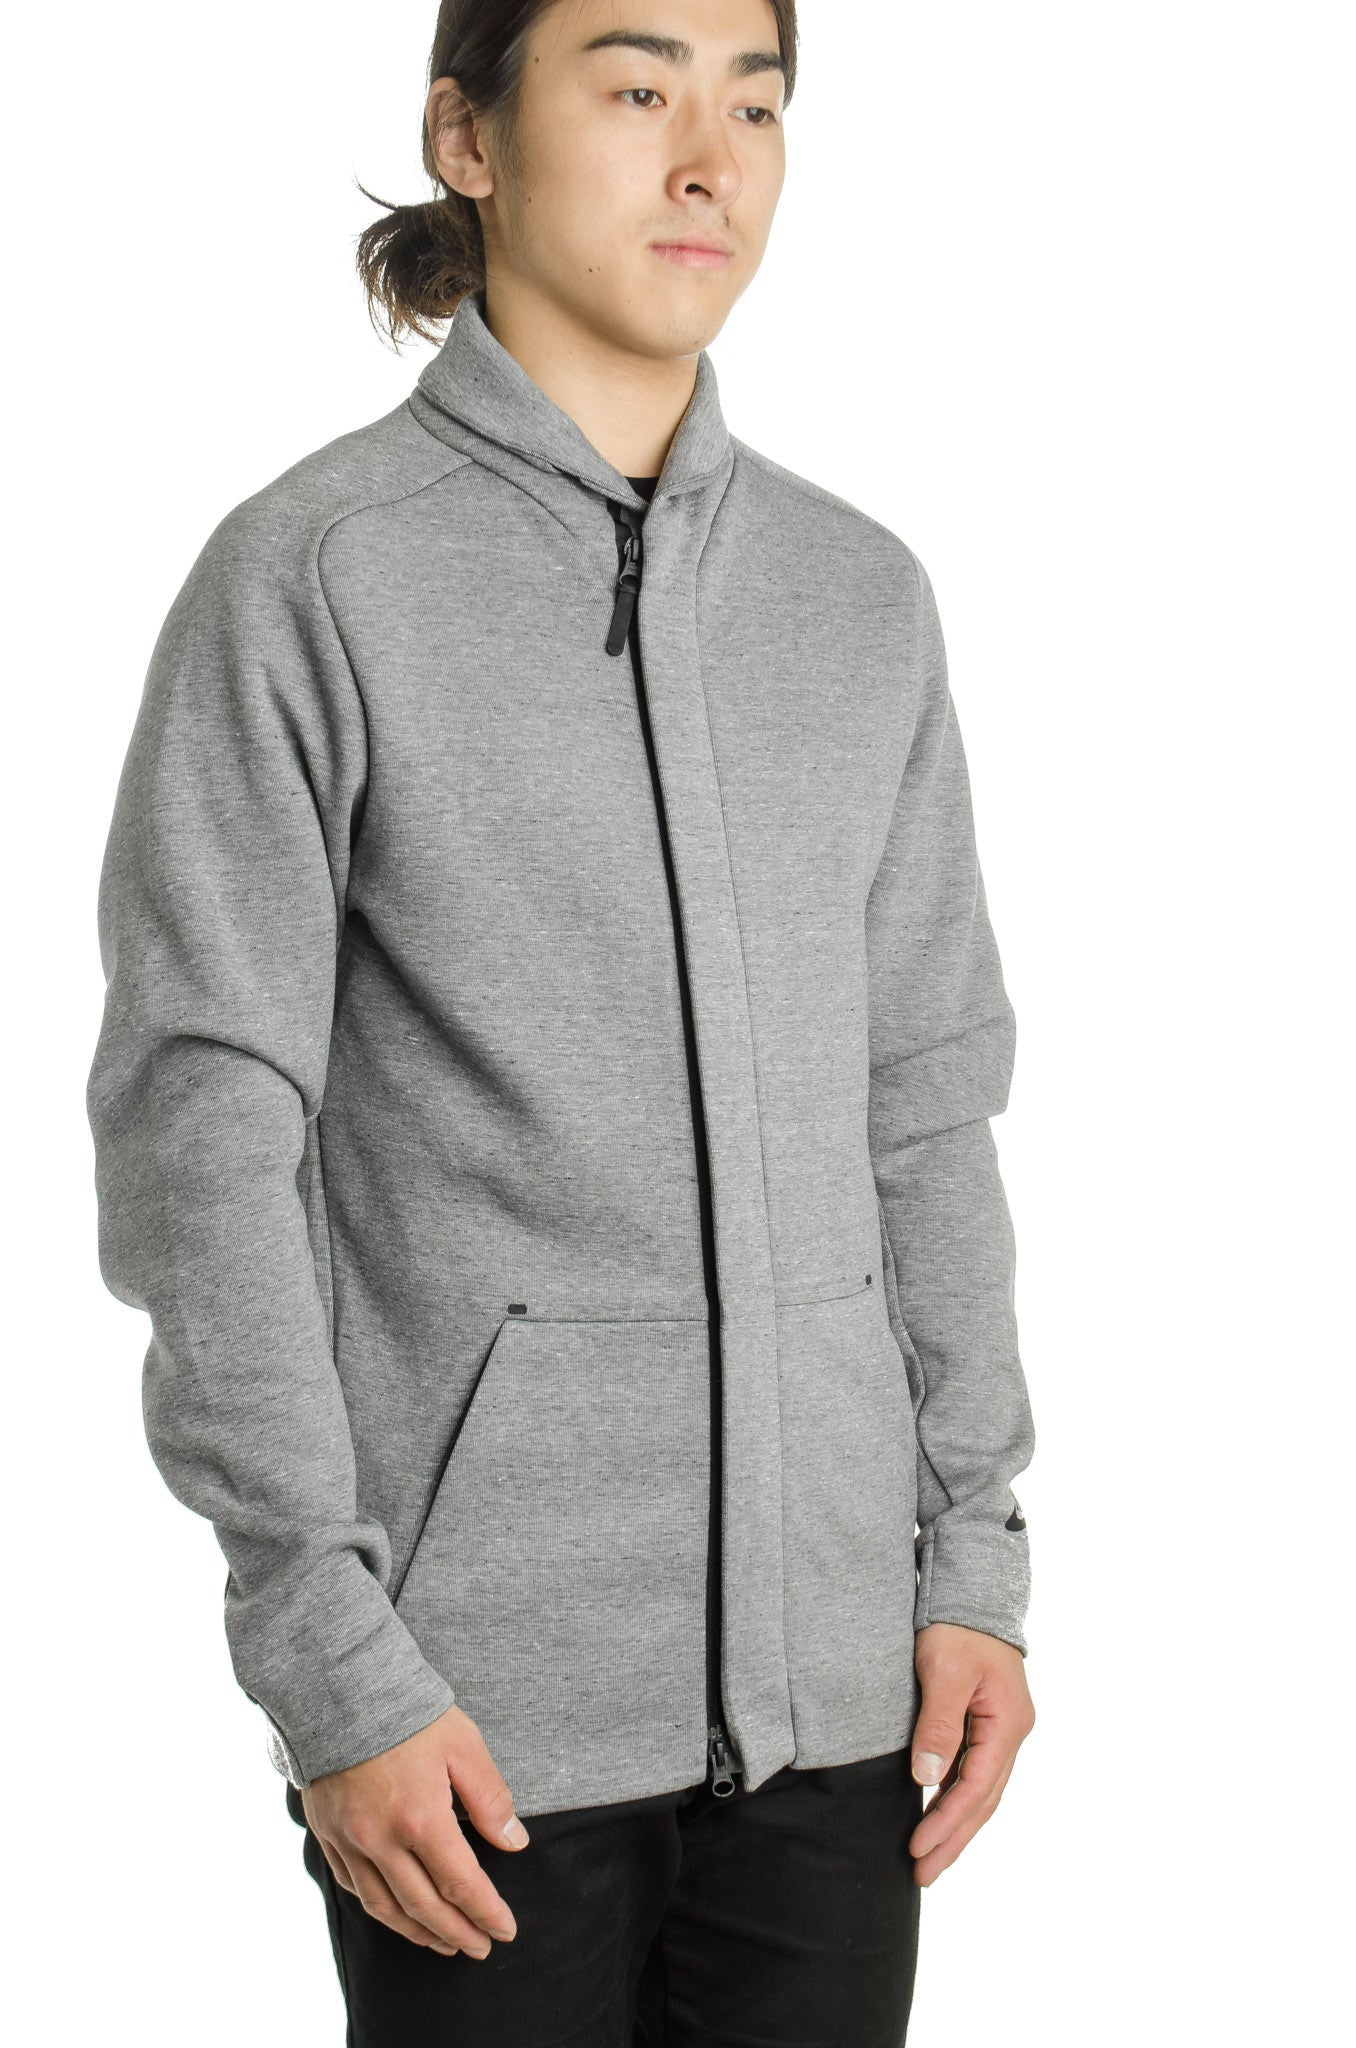 Tech Fleece Jacket  805164-091 Grey